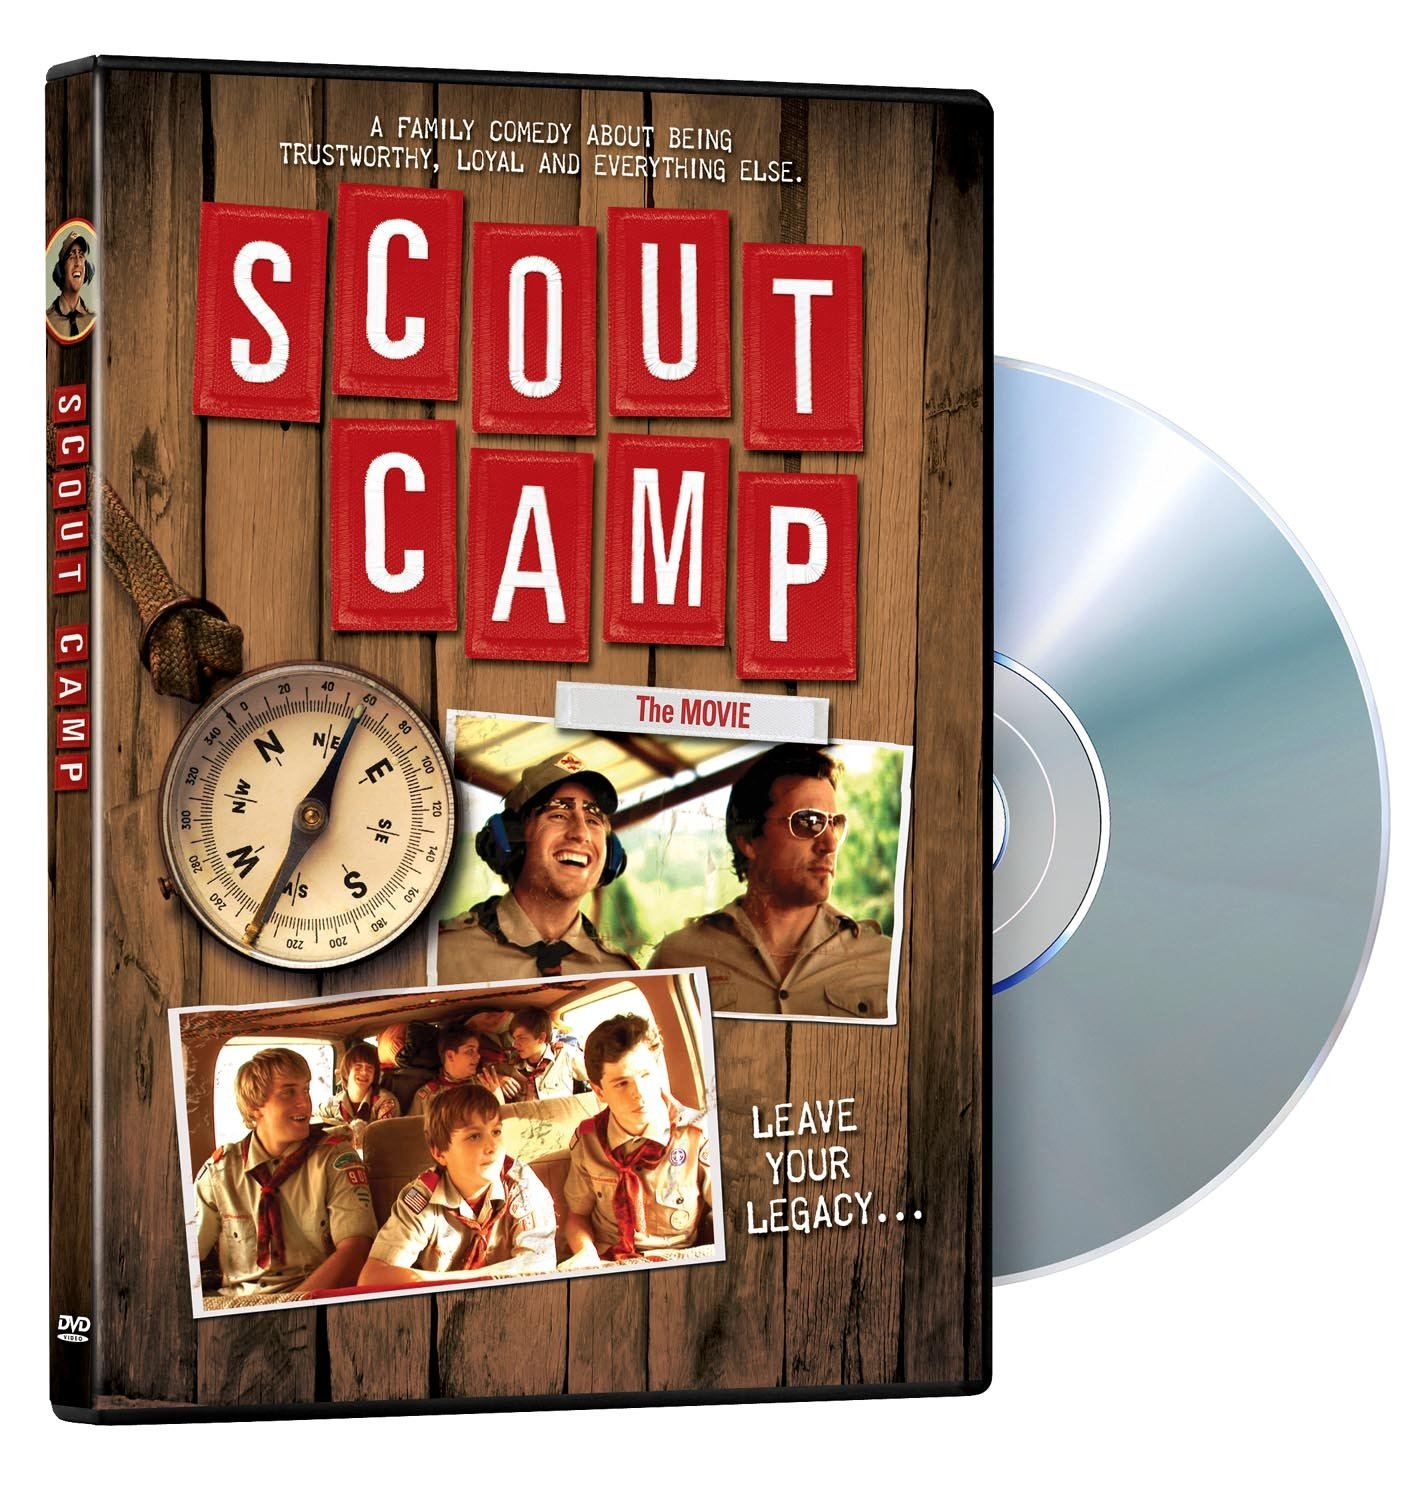 Scout Camp by Excel Entertainment, Three Coin Productions